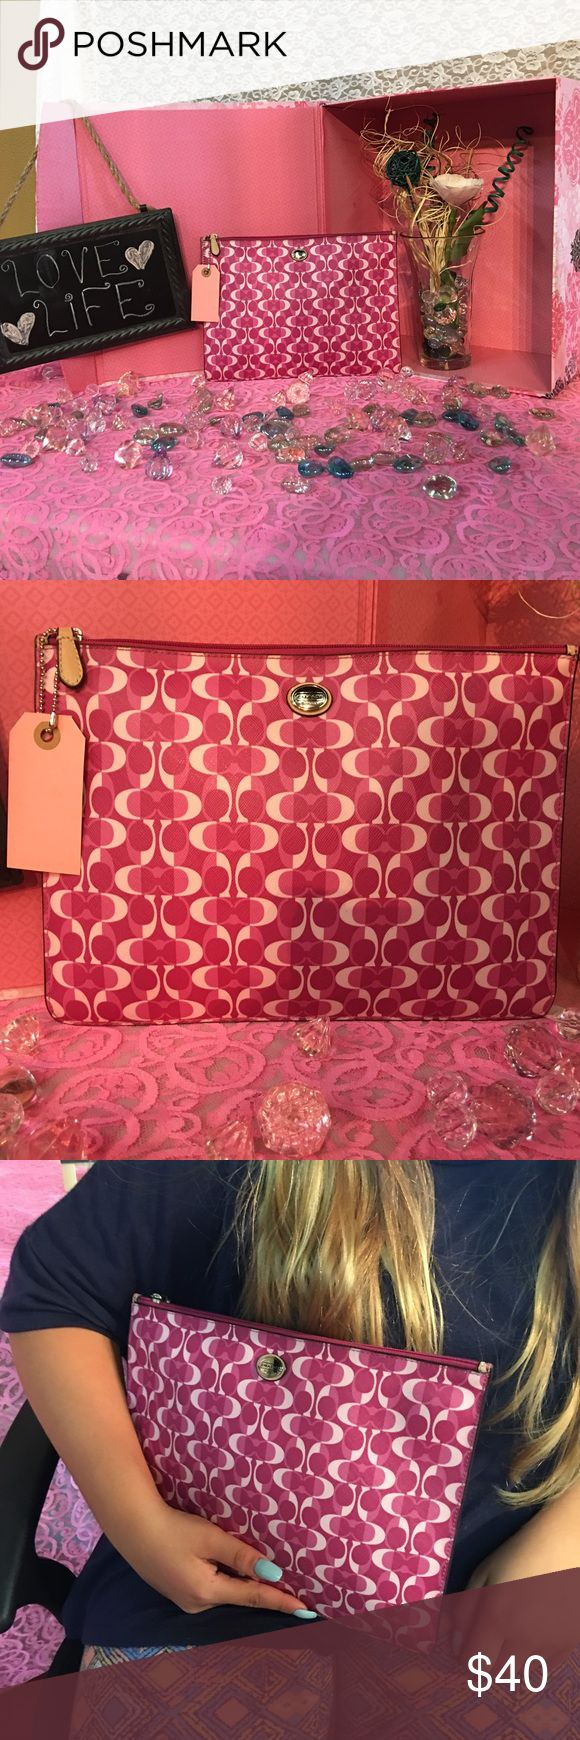 Coach makeup bag/clutch Raspberry and pink colored coach clutch/makeup bag super cute new without tags Coach Bags Cosmetic Bags & Cases